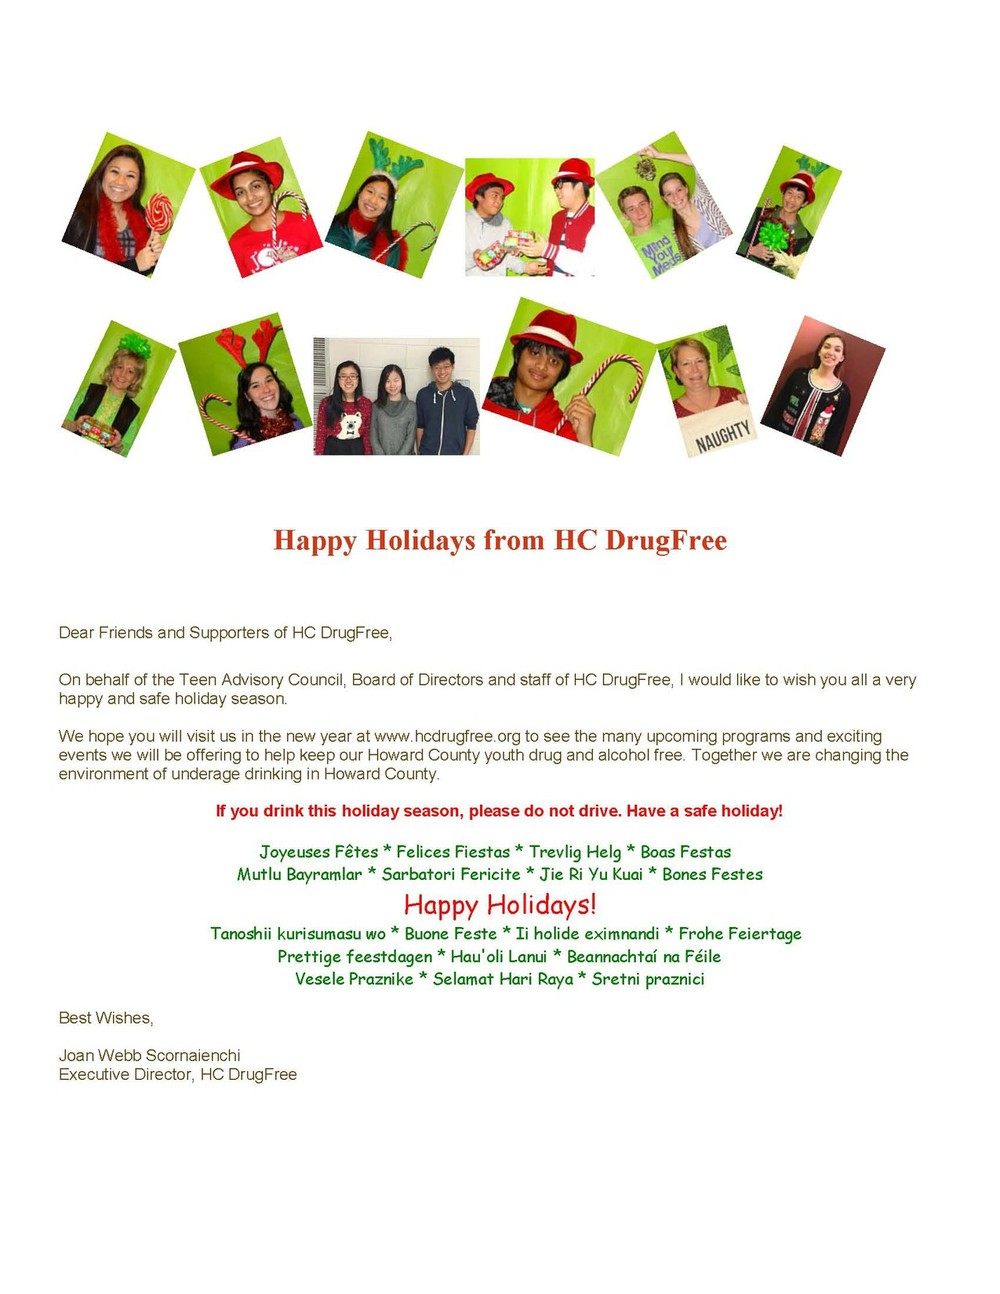 Click on the image to see our Holiday greeting.